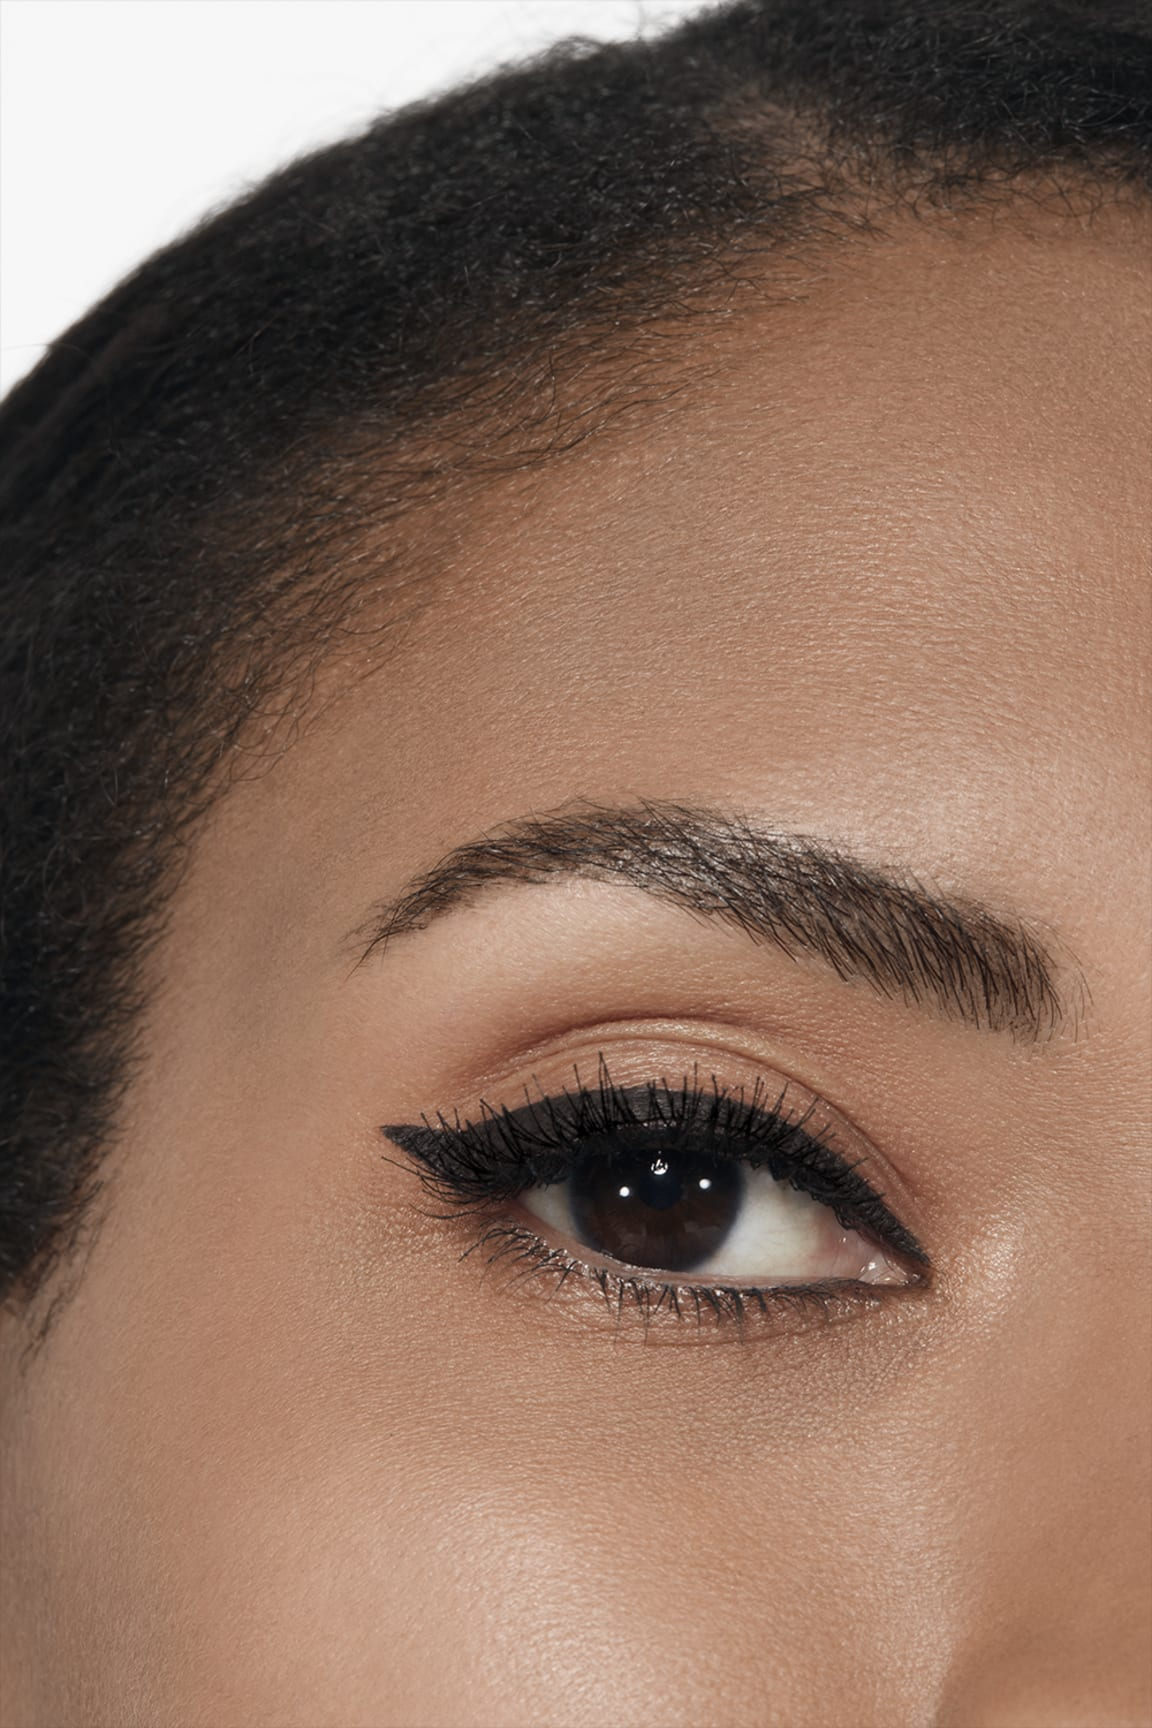 Application makeup visual 2 - LE LINER DE CHANEL 512 - NOIR PROFOND